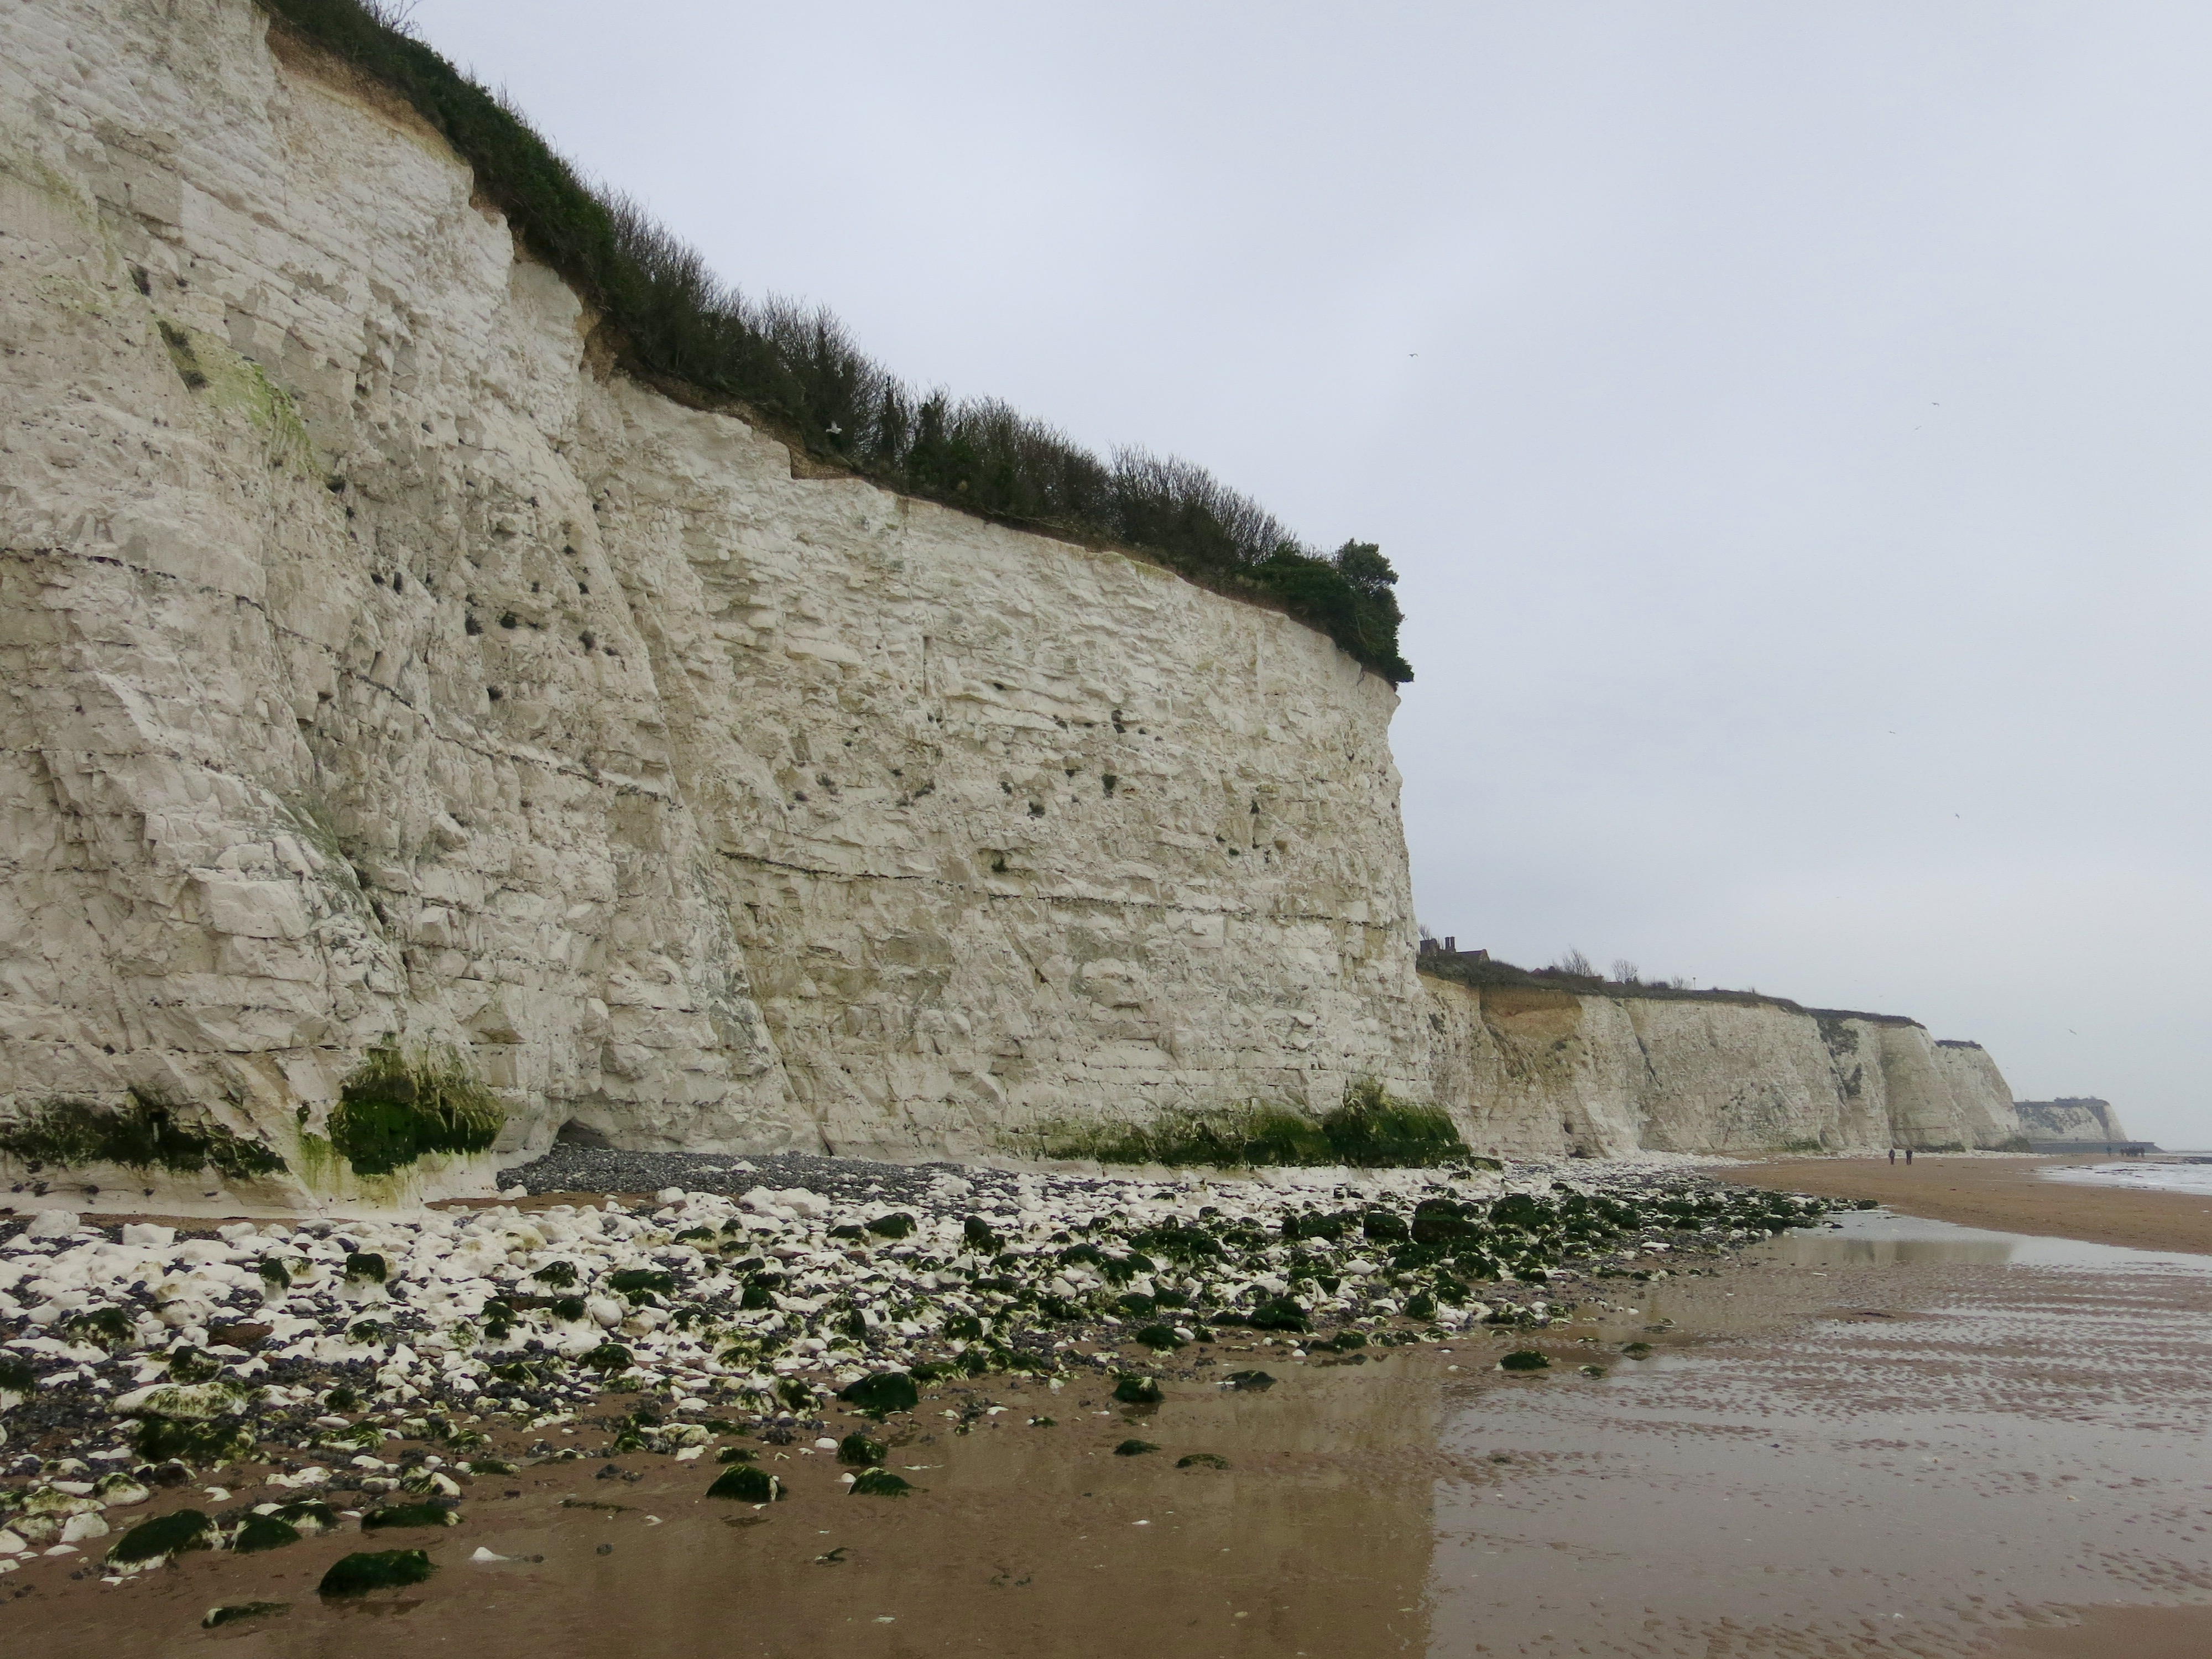 Ramsgate to Margate - 1 (7)